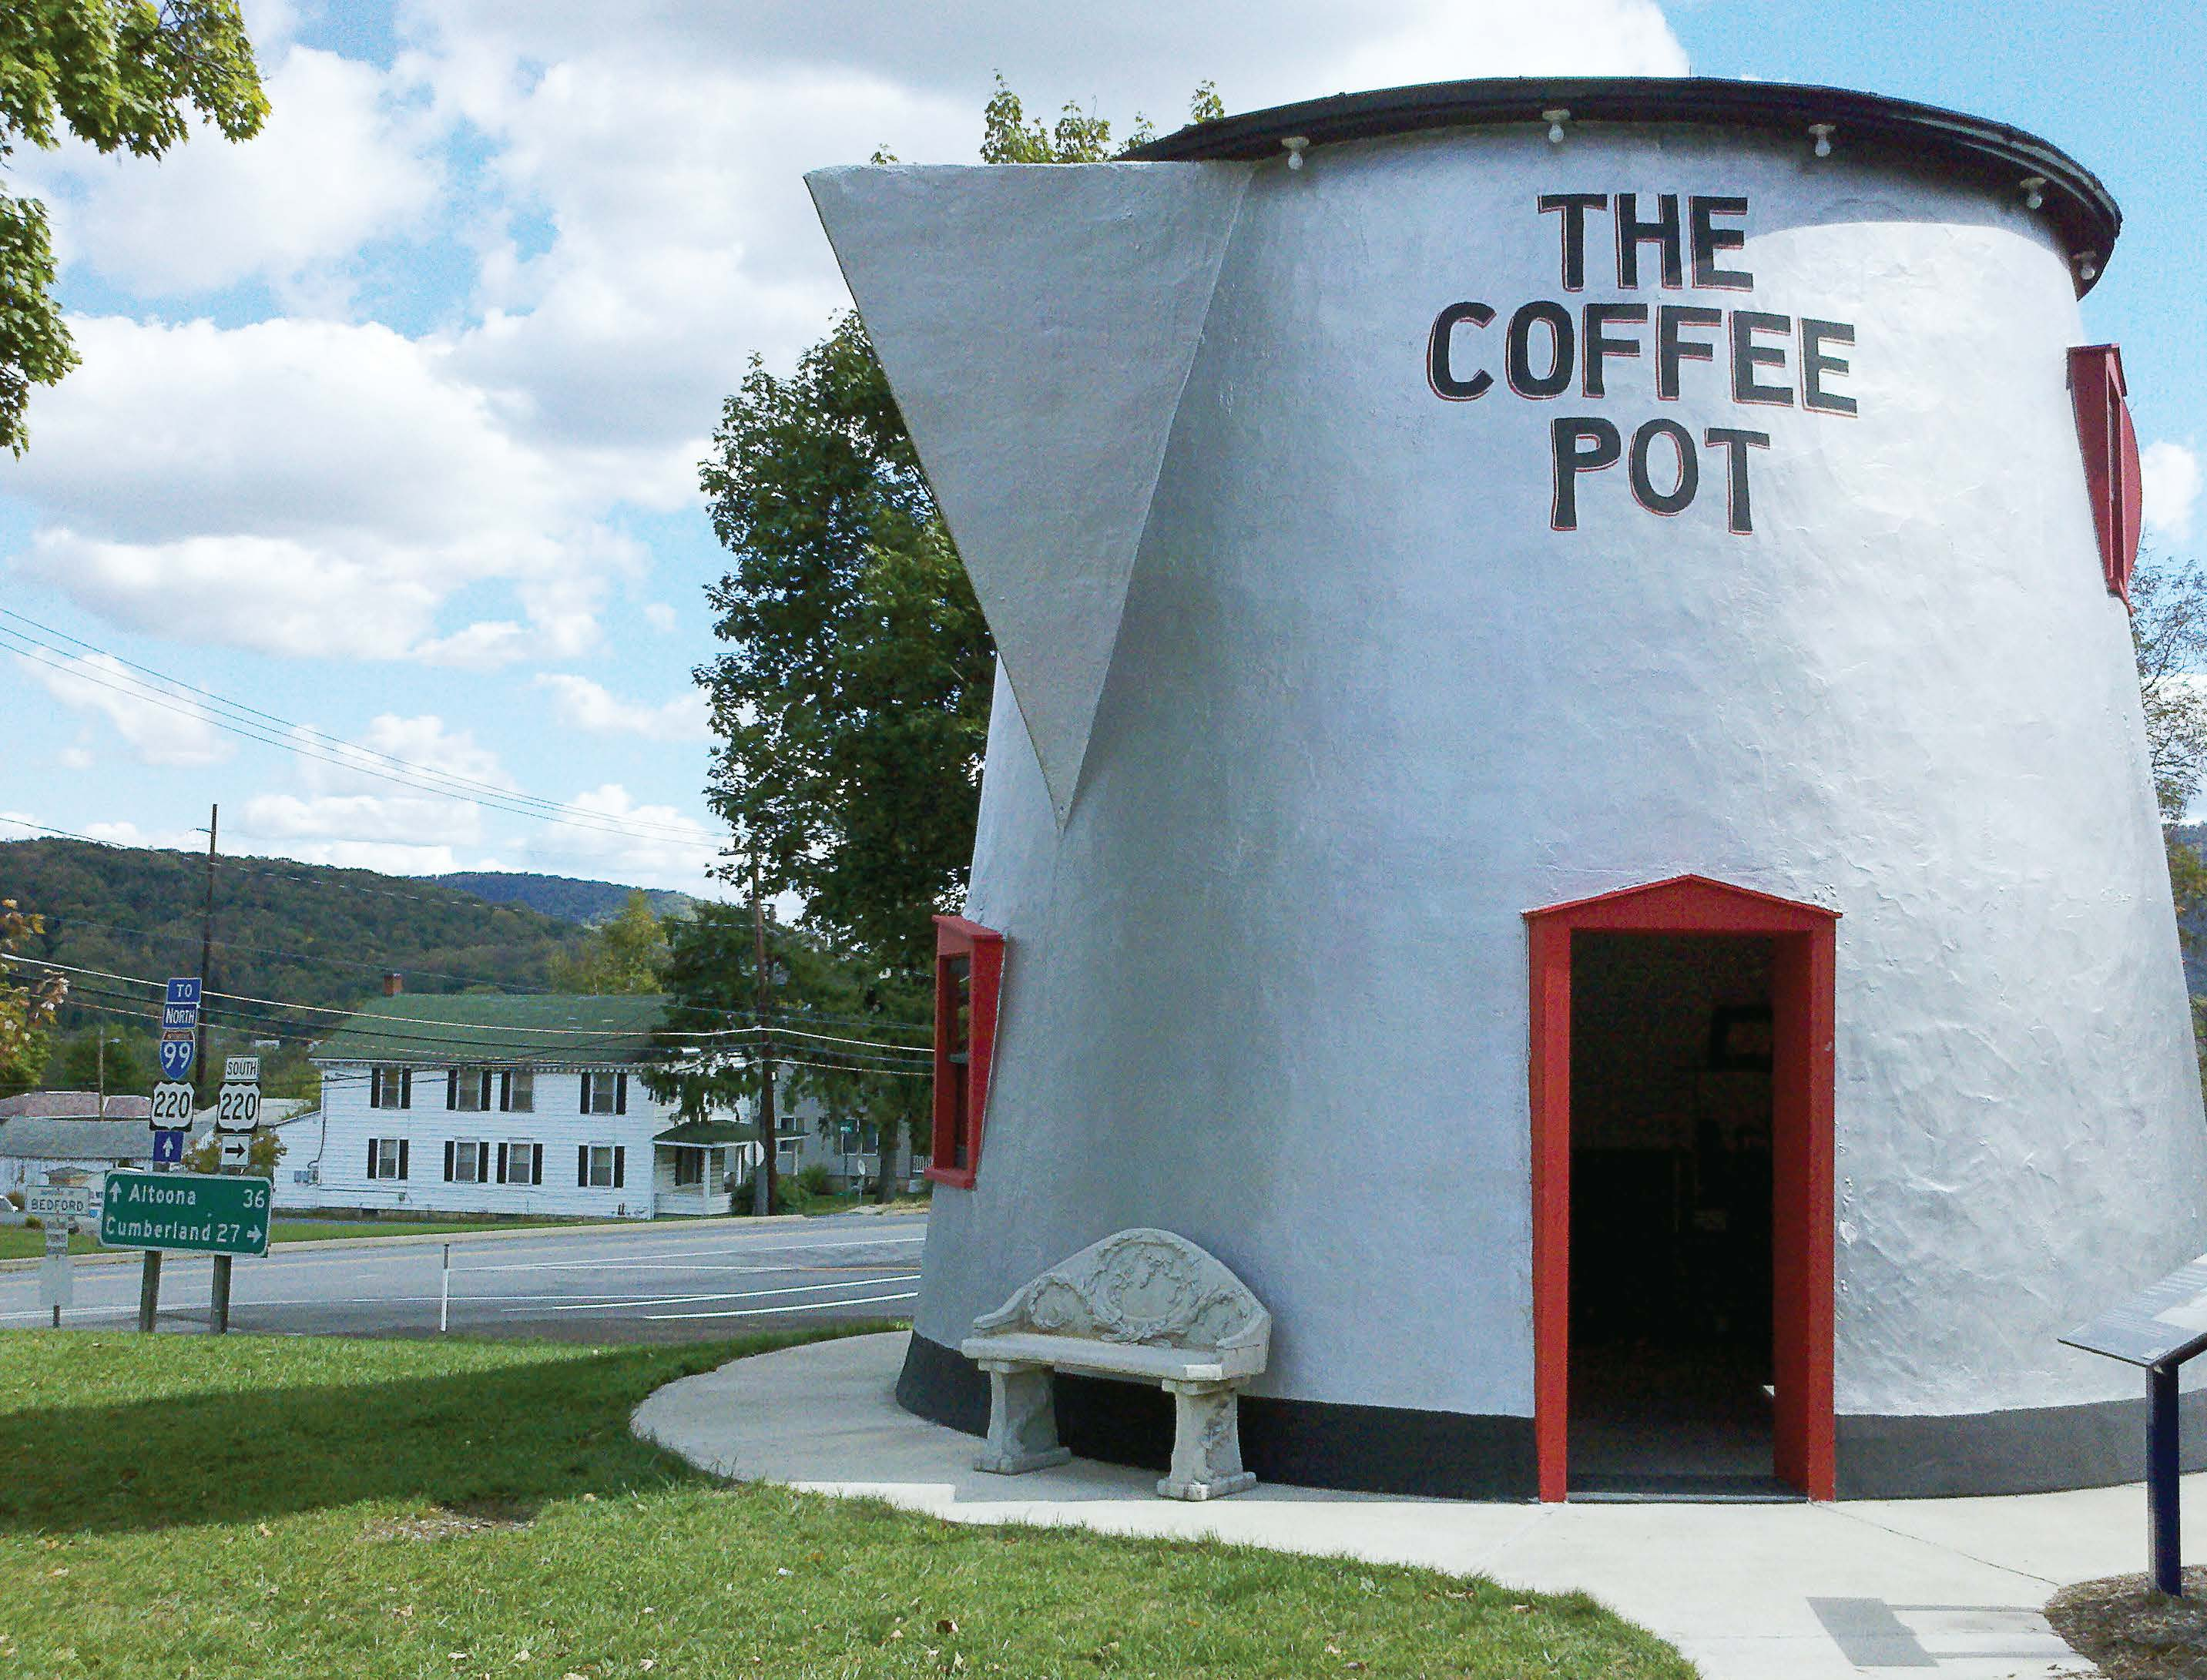 The Coffee Pot Bedford, Pa  – The Municipal